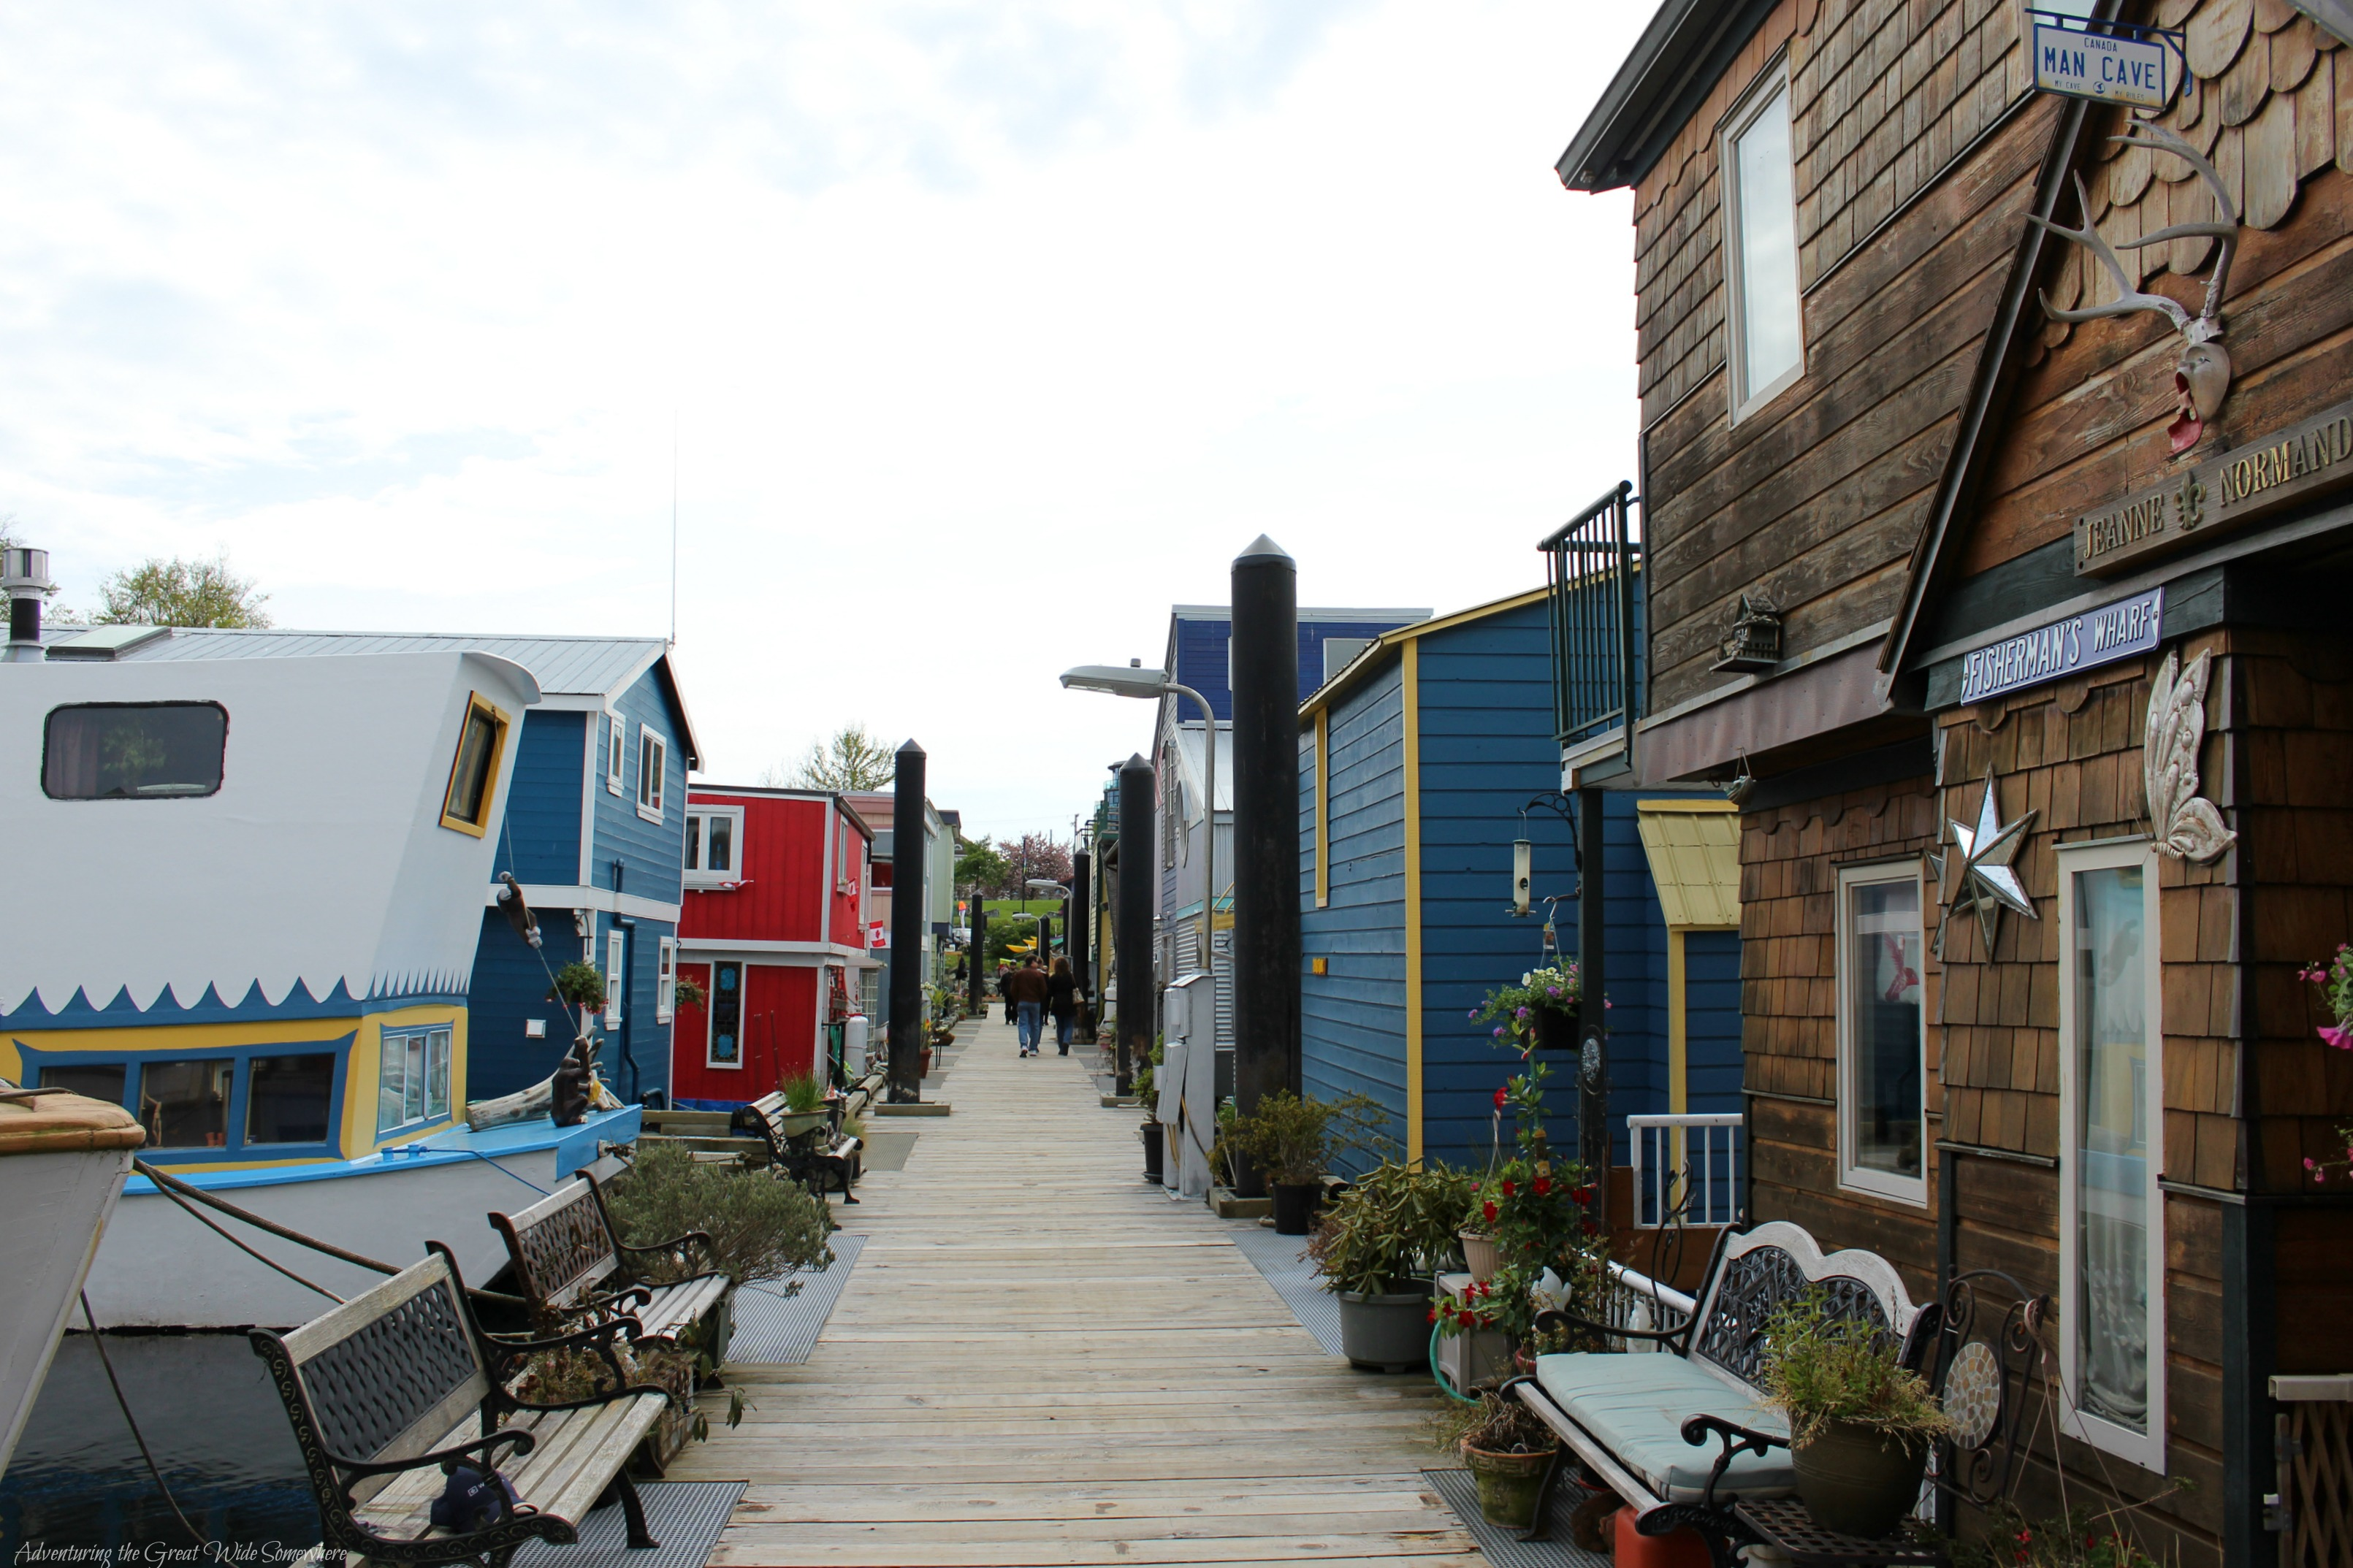 Eclectic Homes Along Fisherman's Wharf in Victoria B.C.